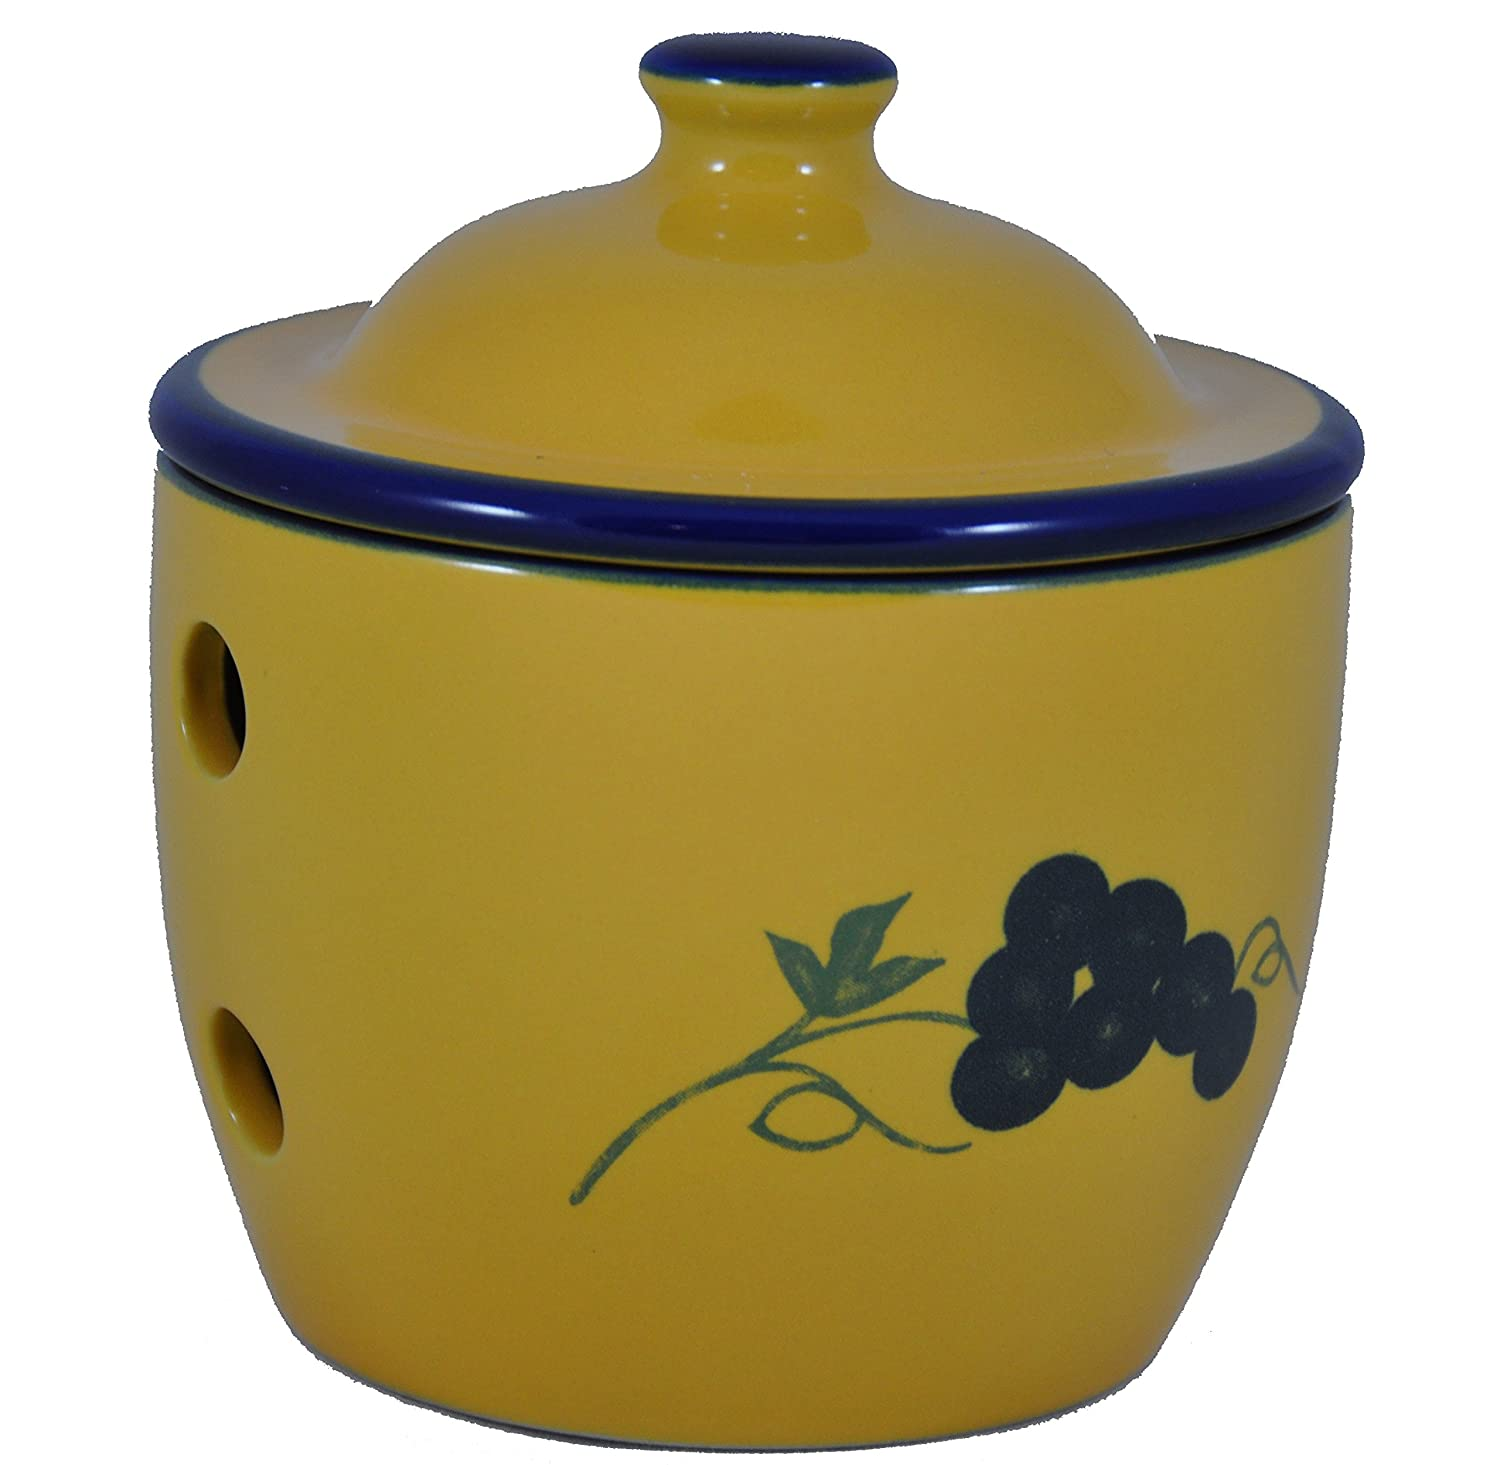 Cooks Innovations Garlic Storage Jar - Grape (blue & yellow) by Cooks Innovations PCJ400